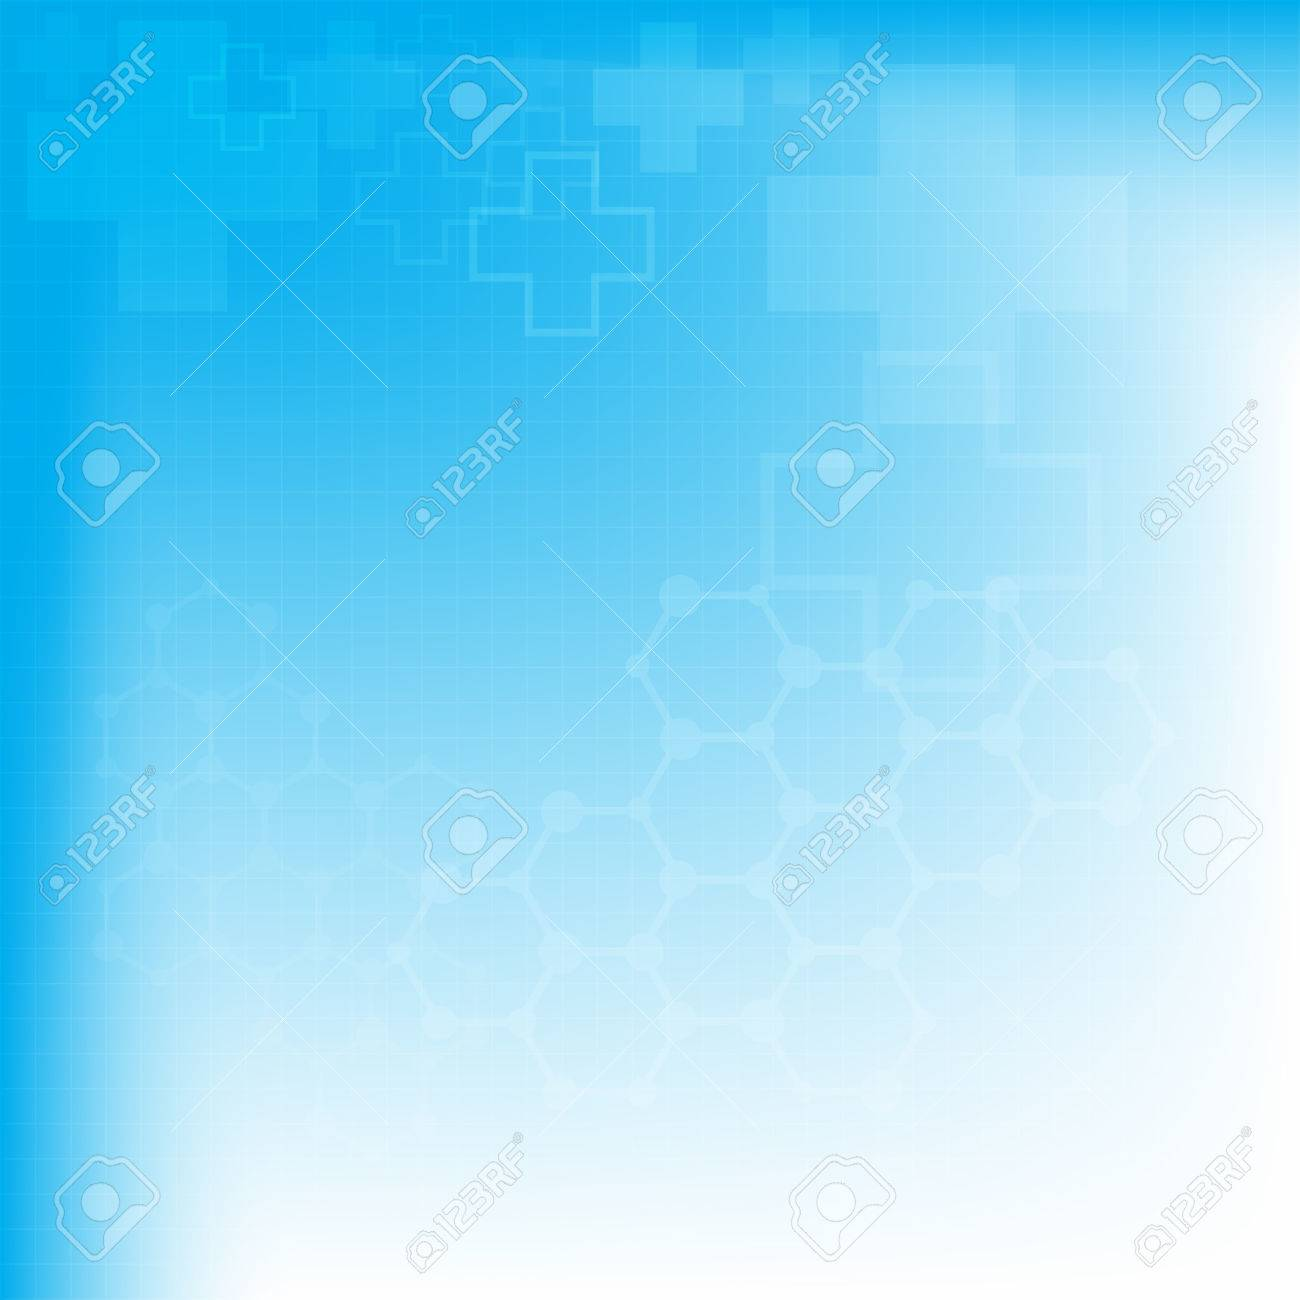 Abstract molecules medical background, vector illustration - 37046313